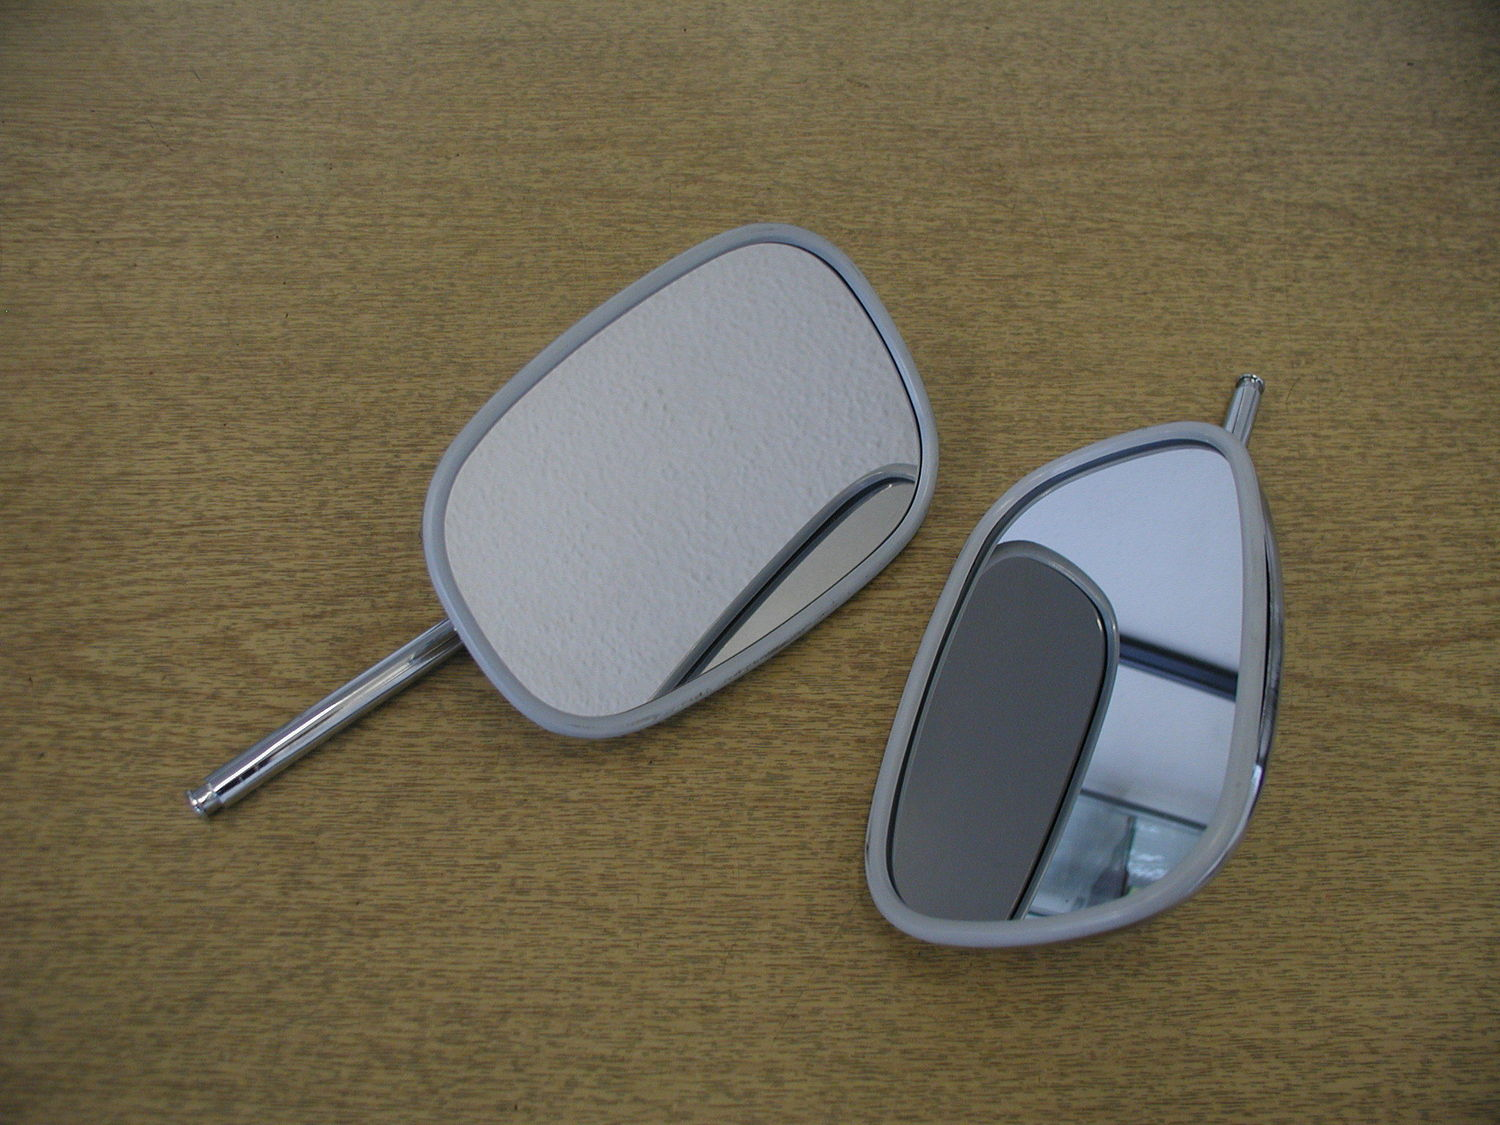 Door Mirror - Telescopic, Convex, LH